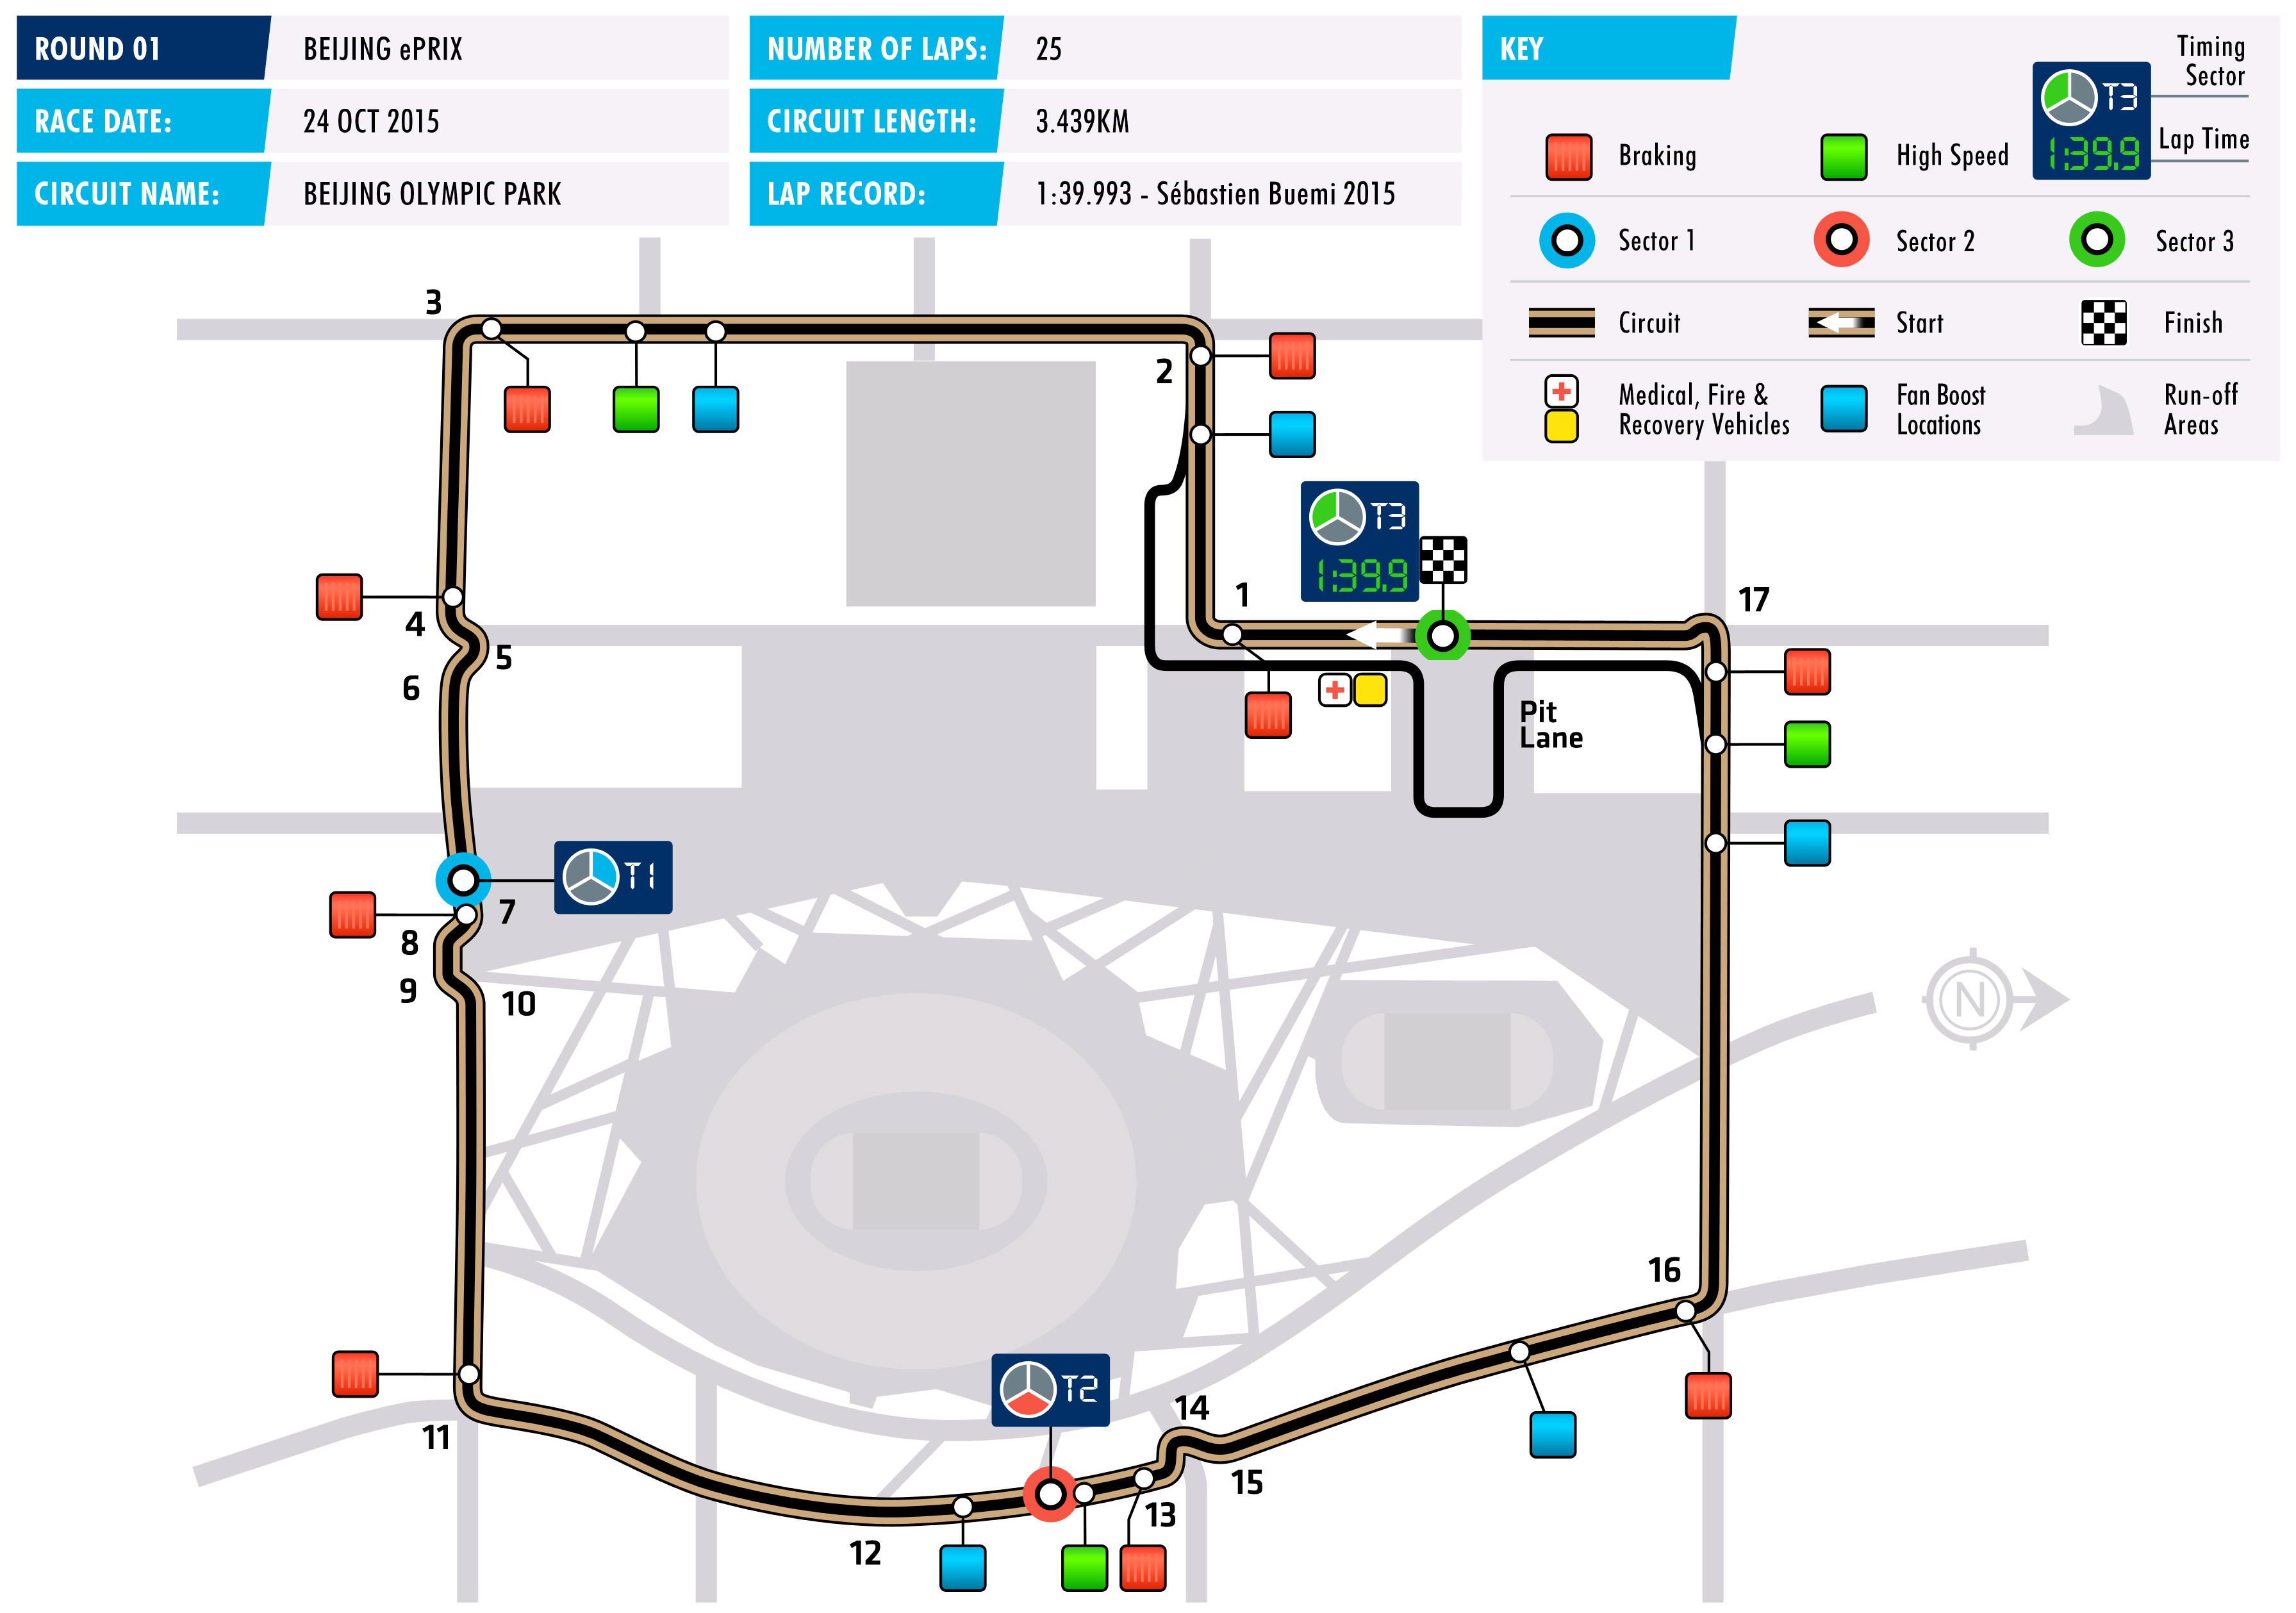 2016 Beijing ePrix - Circuit Map